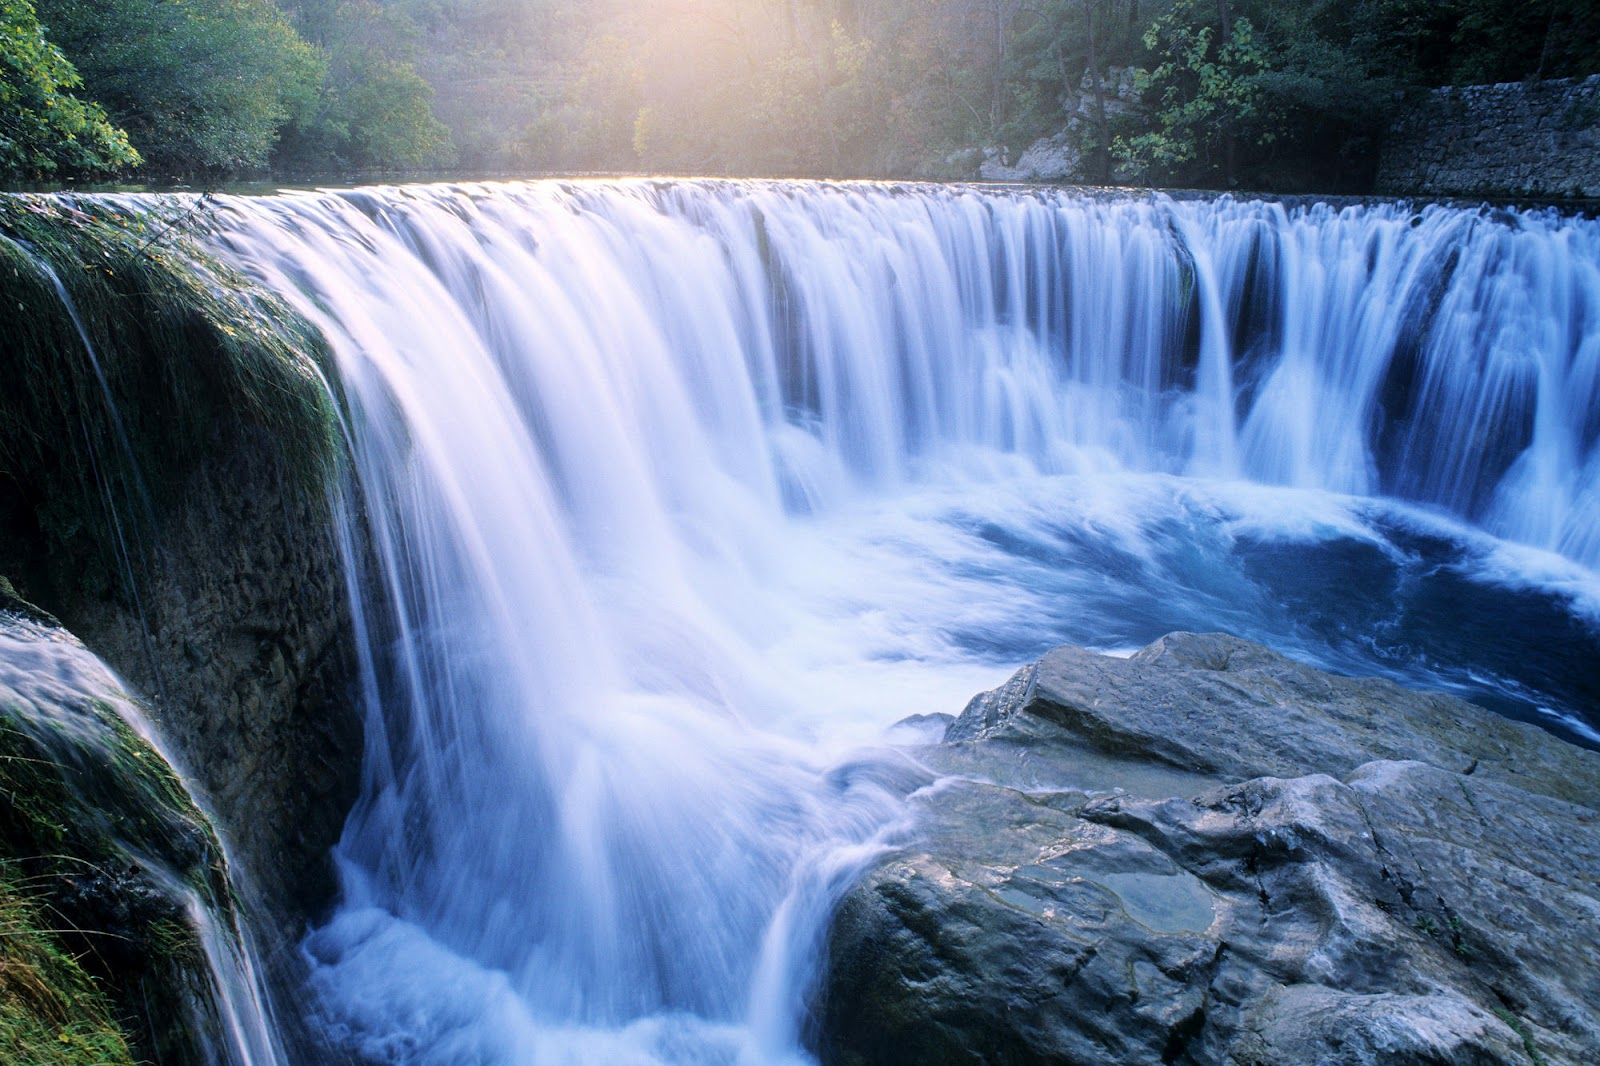 A Wallpapers Home: Hd Wallpapers Of Waterfalls